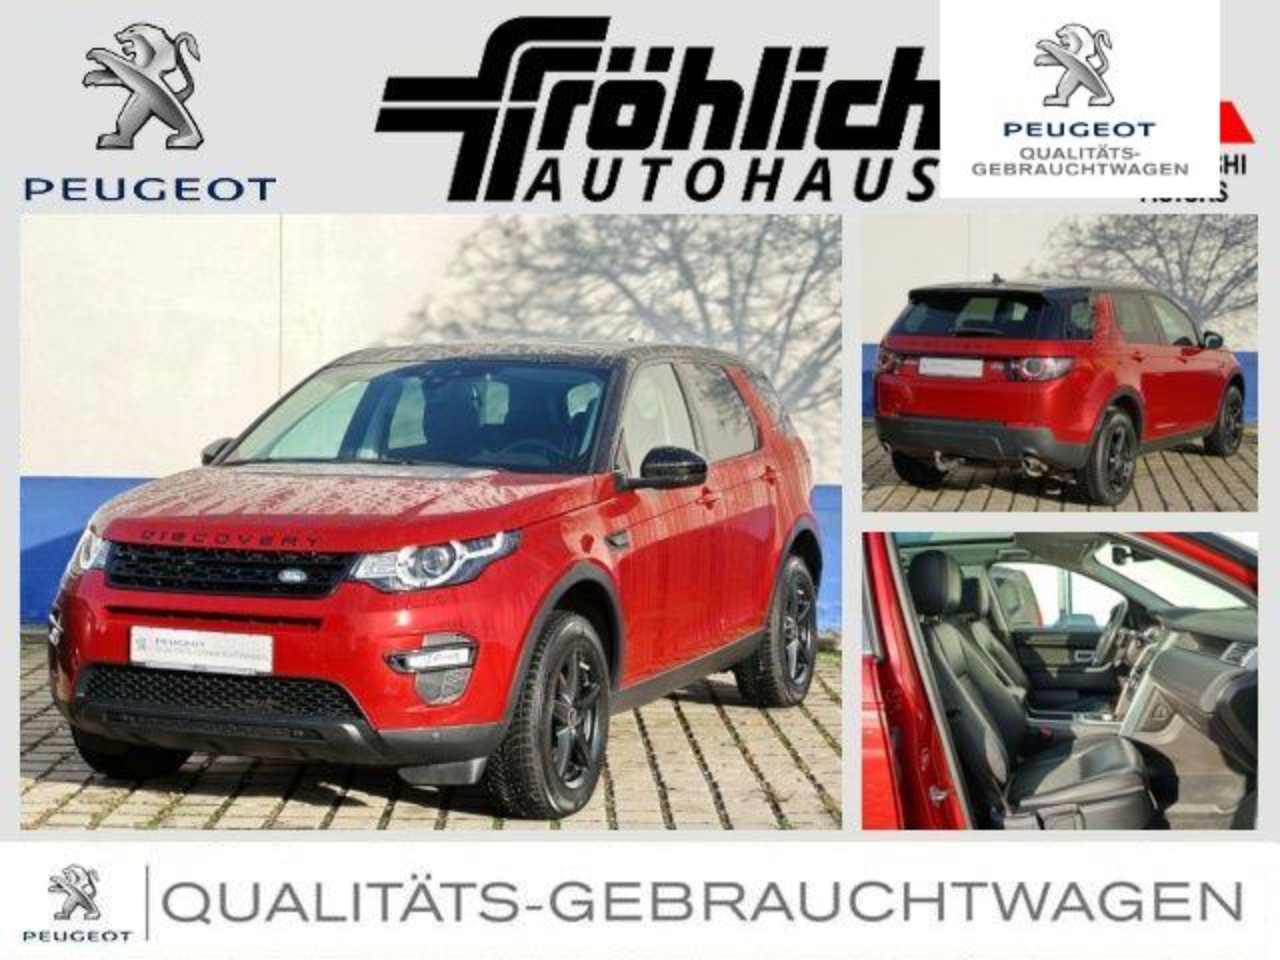 Land rover Discovery Sport EURO6-D Autom.4WD 8fach bereift